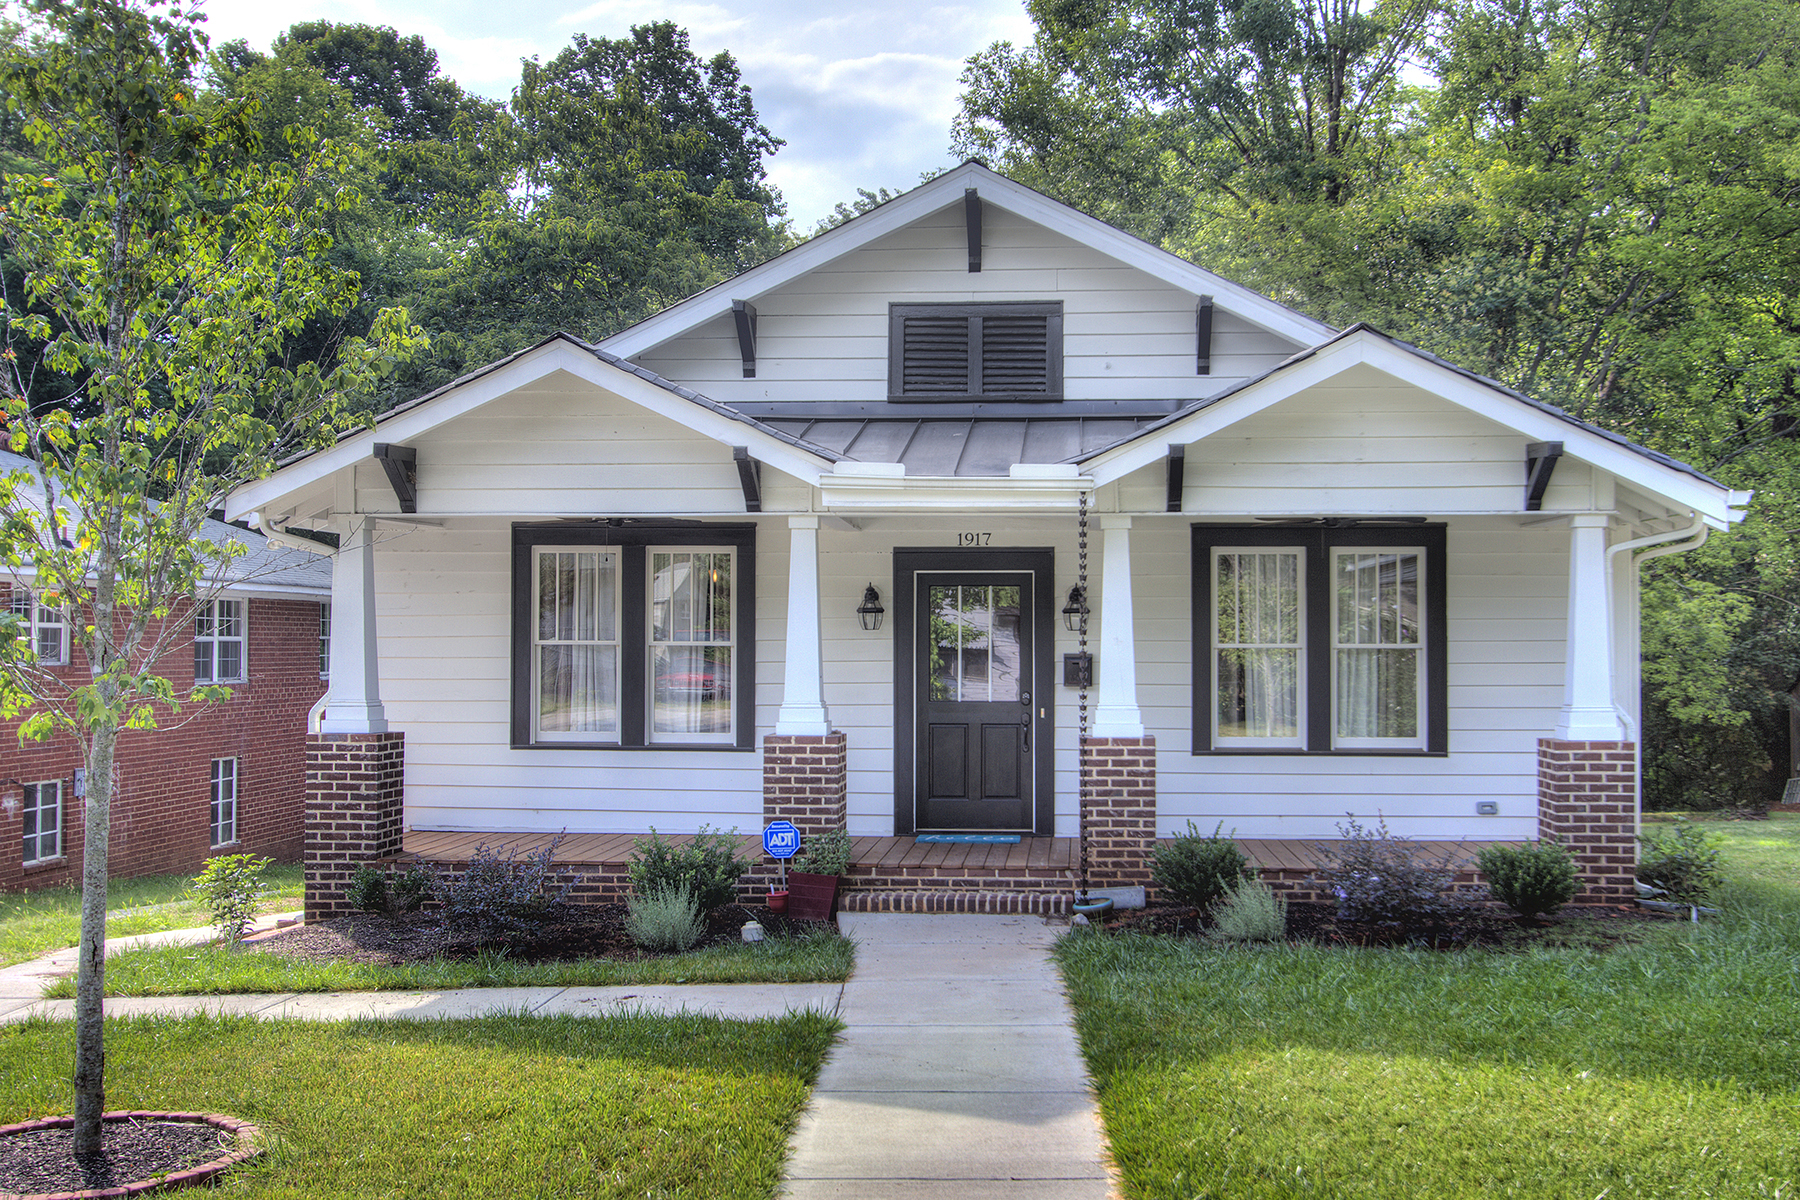 Single Family Home for Sale at 1917 Wilmore Dr , Charlotte, NC 28203 1917 Wilmore Dr Charlotte, North Carolina, 28203 United States